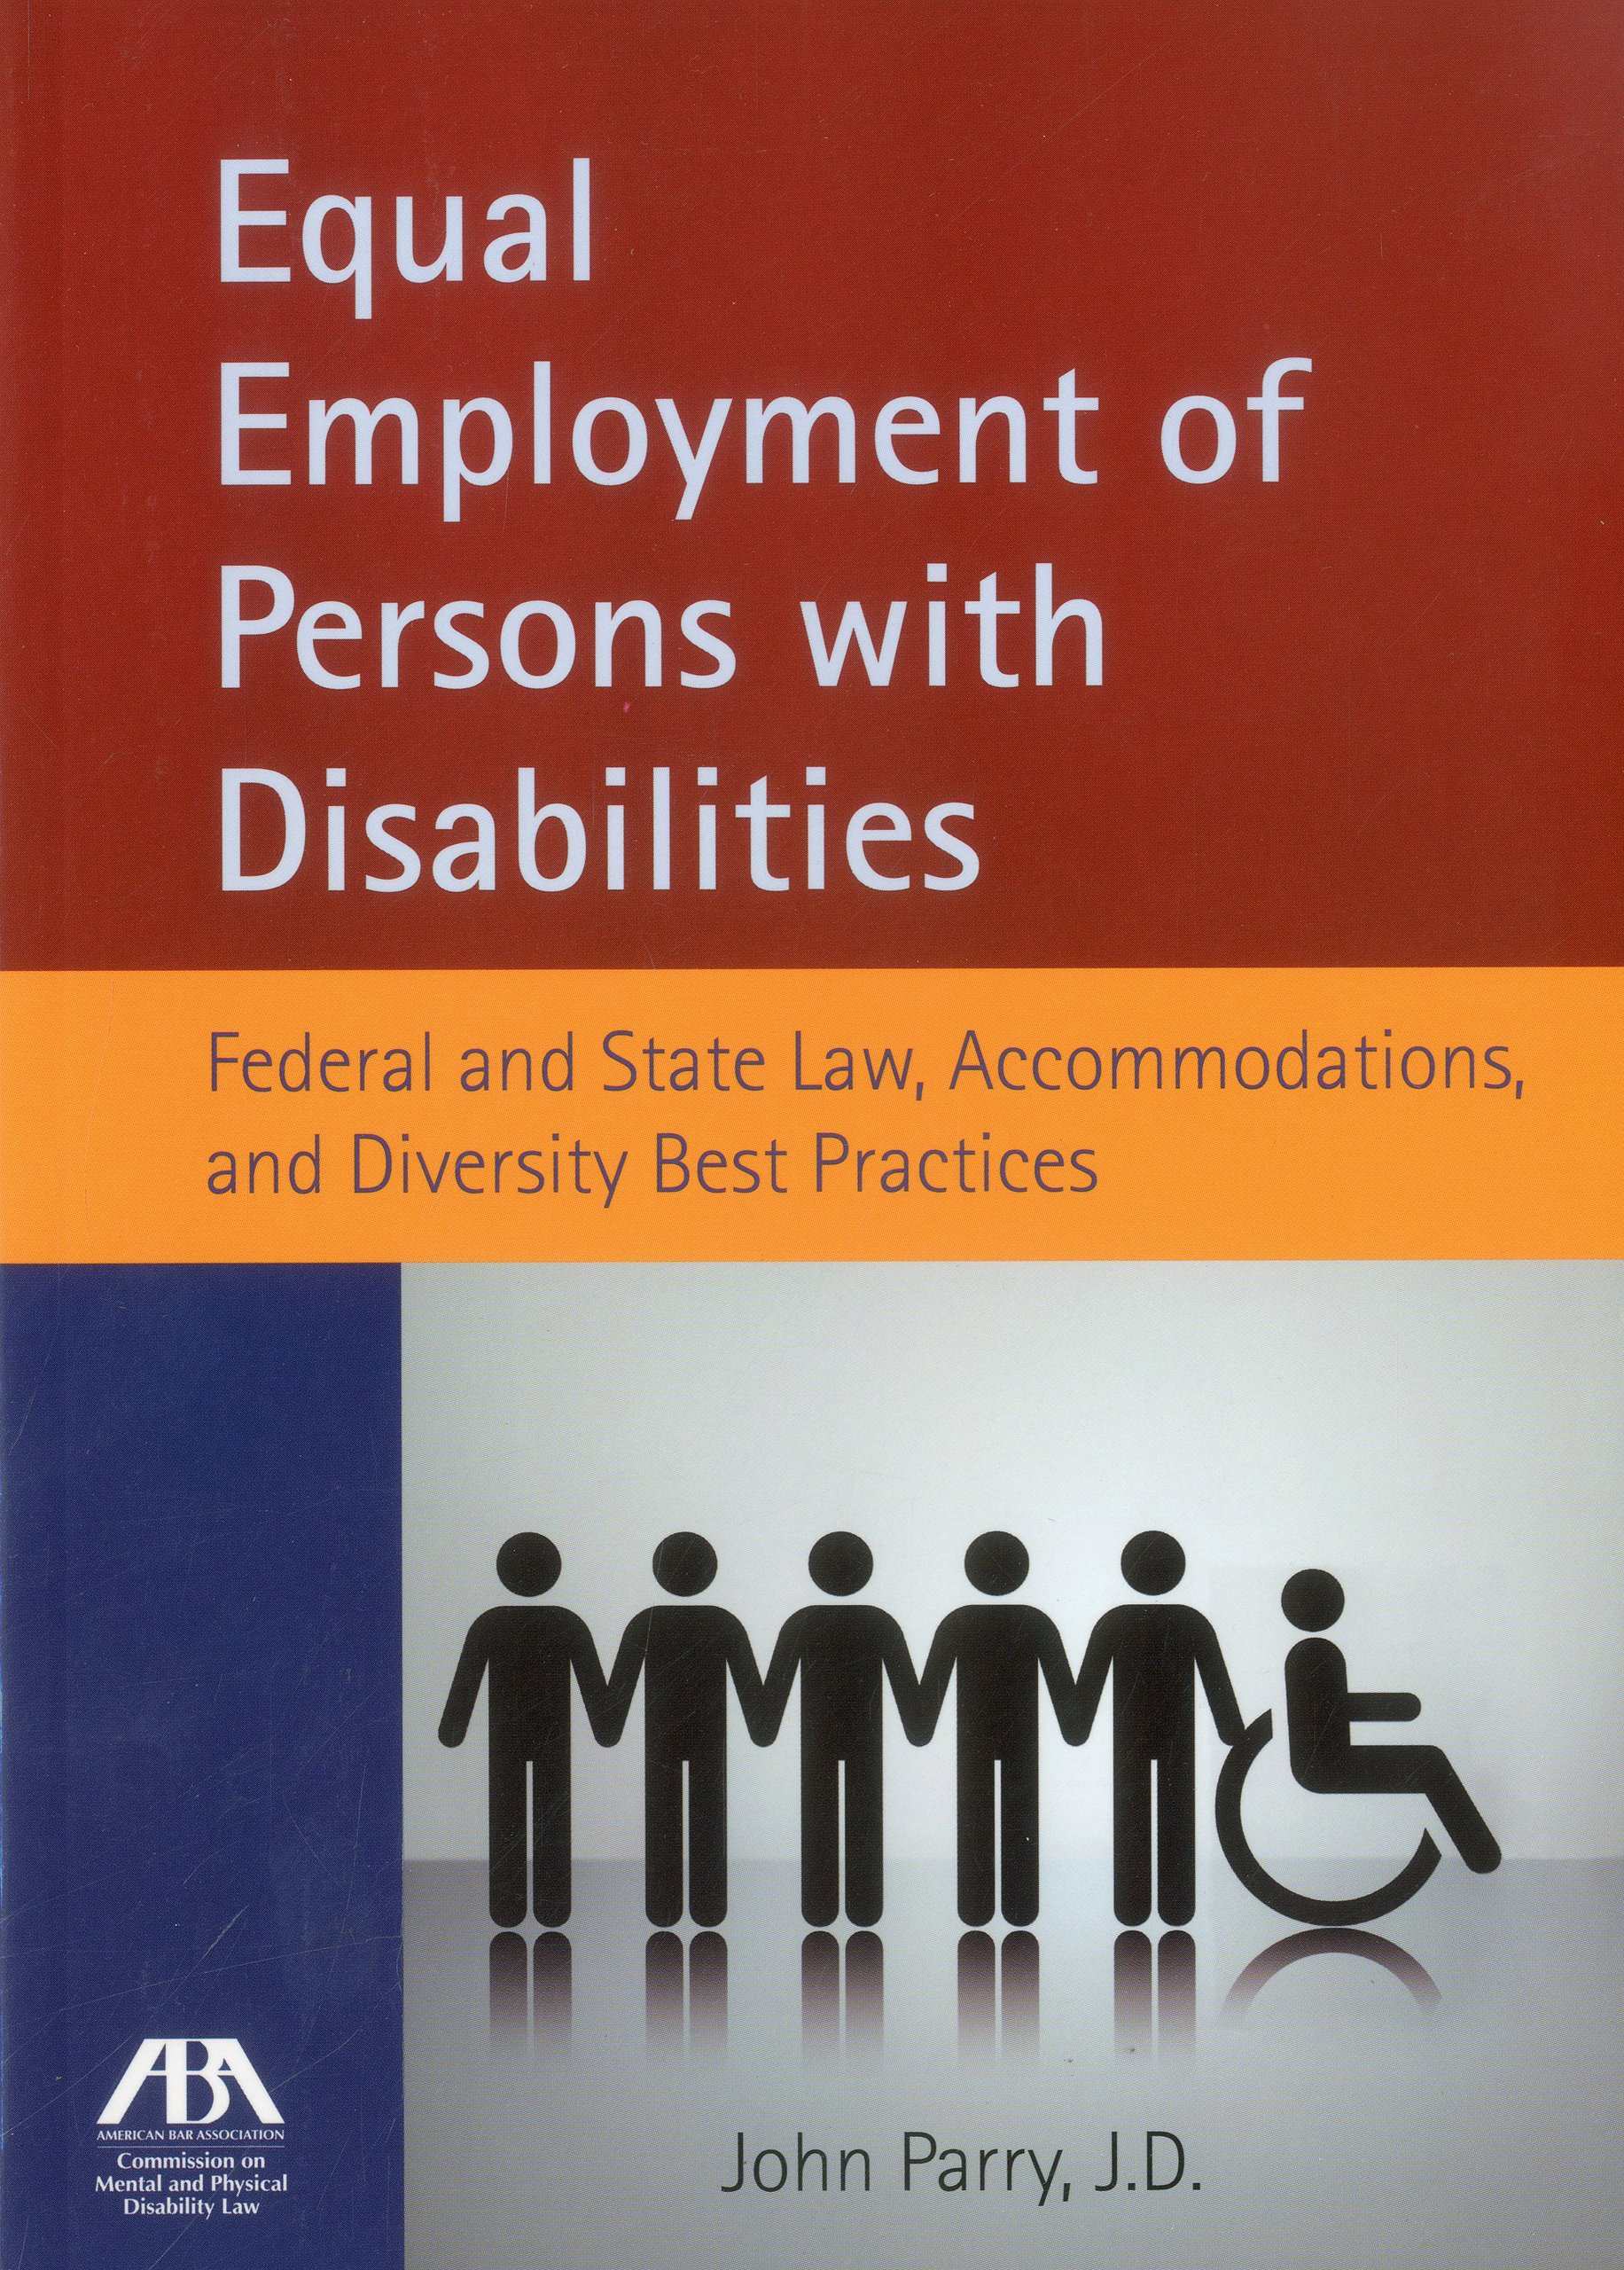 Equal Employment of Persons with Disabilities: Federal and State Law, Accommodations, and Diversity Best Practices PDF